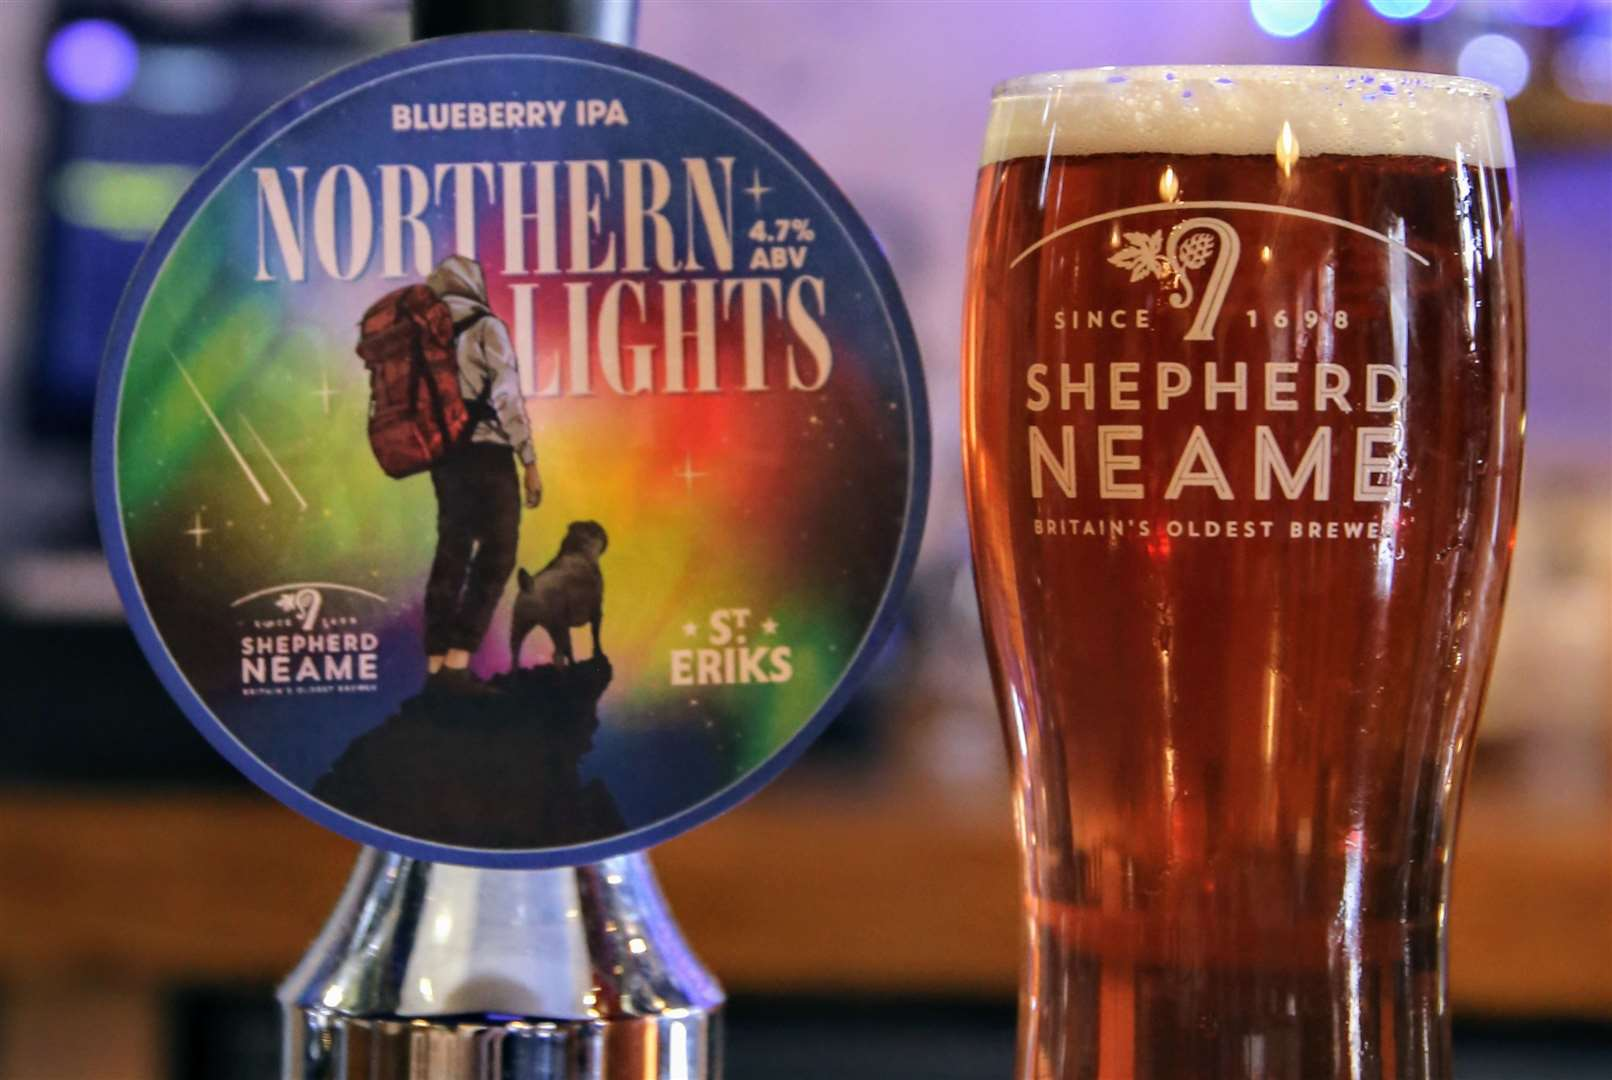 Northern Lights is a blueberry IPA (19018314)